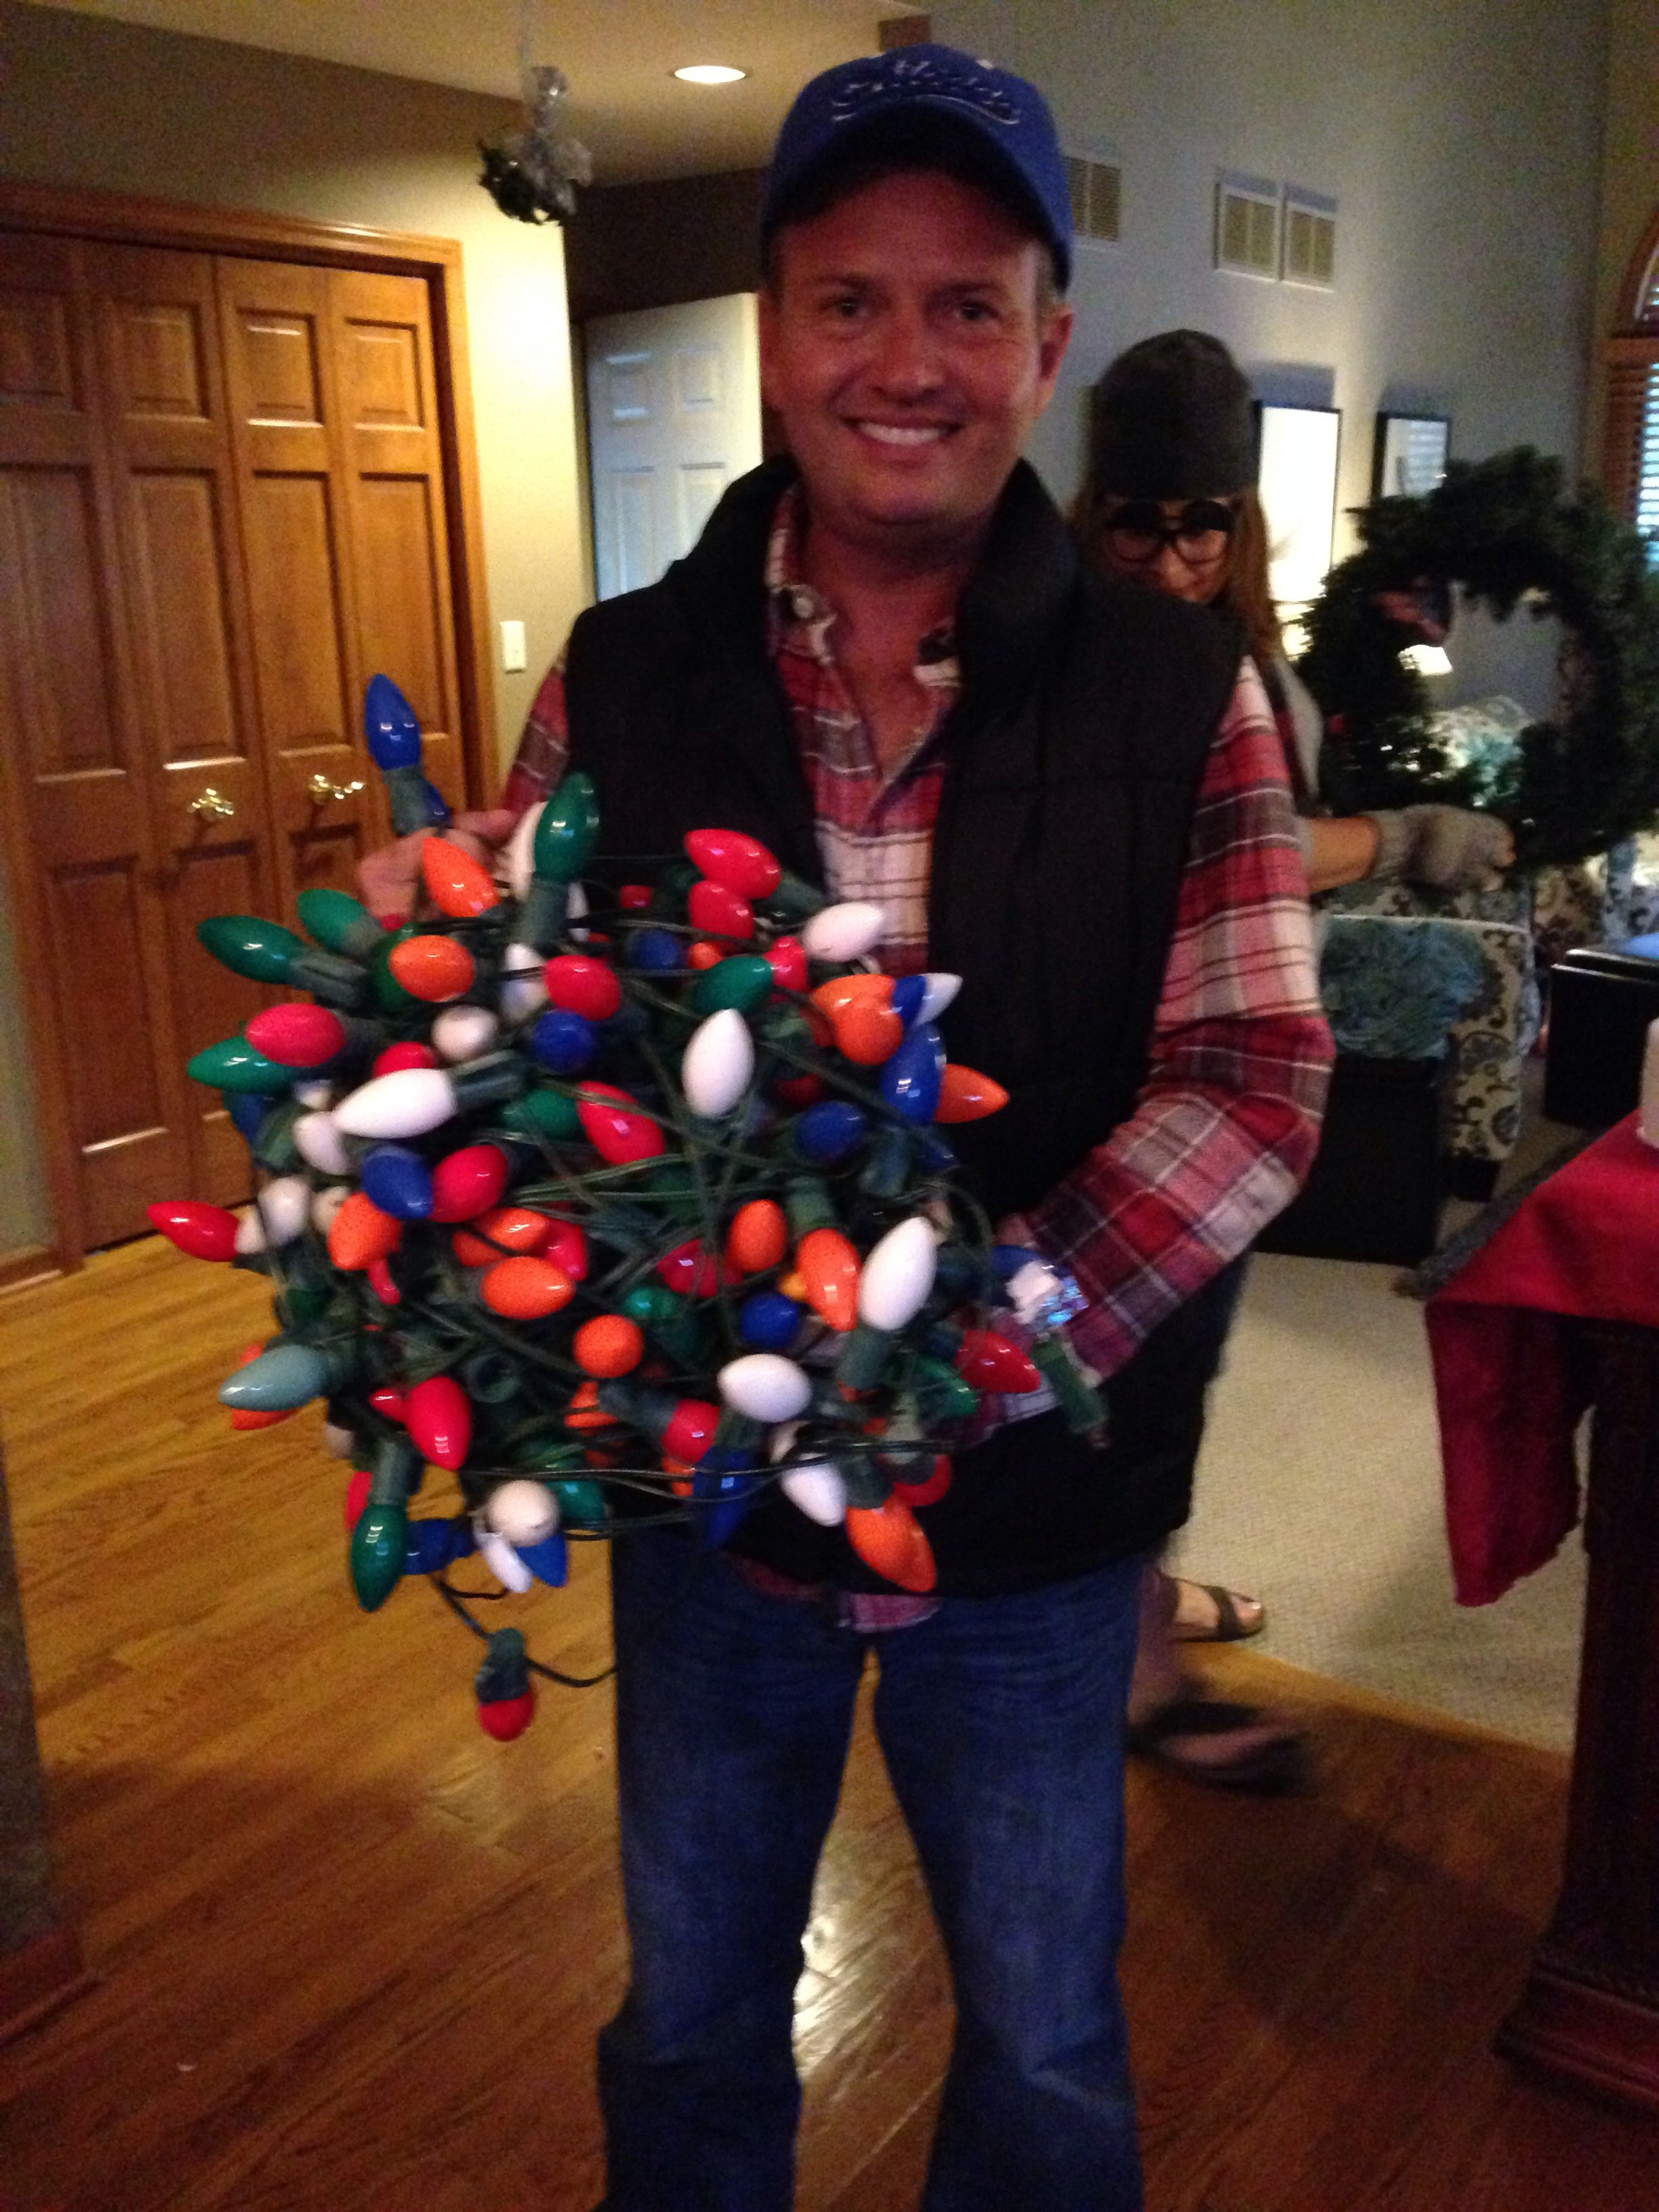 Delightful Christmas Vacation Party Ideas Part - 12: Clark Griswold Christmas Vacation Party Costume Idea.